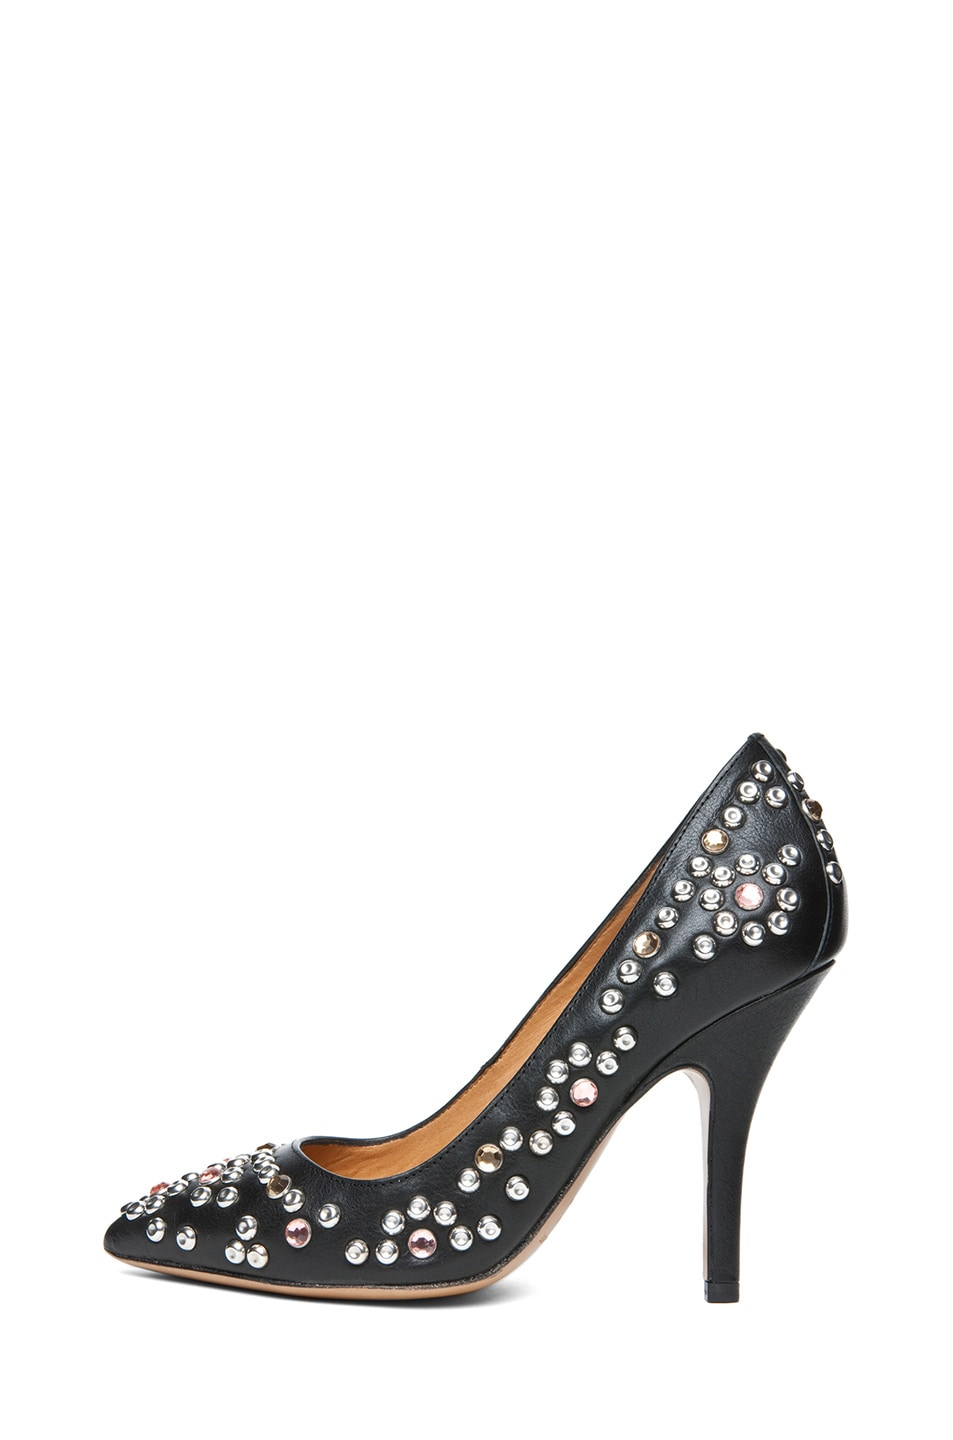 Image 1 of Isabel Marant Clemence Studded Heel in Black